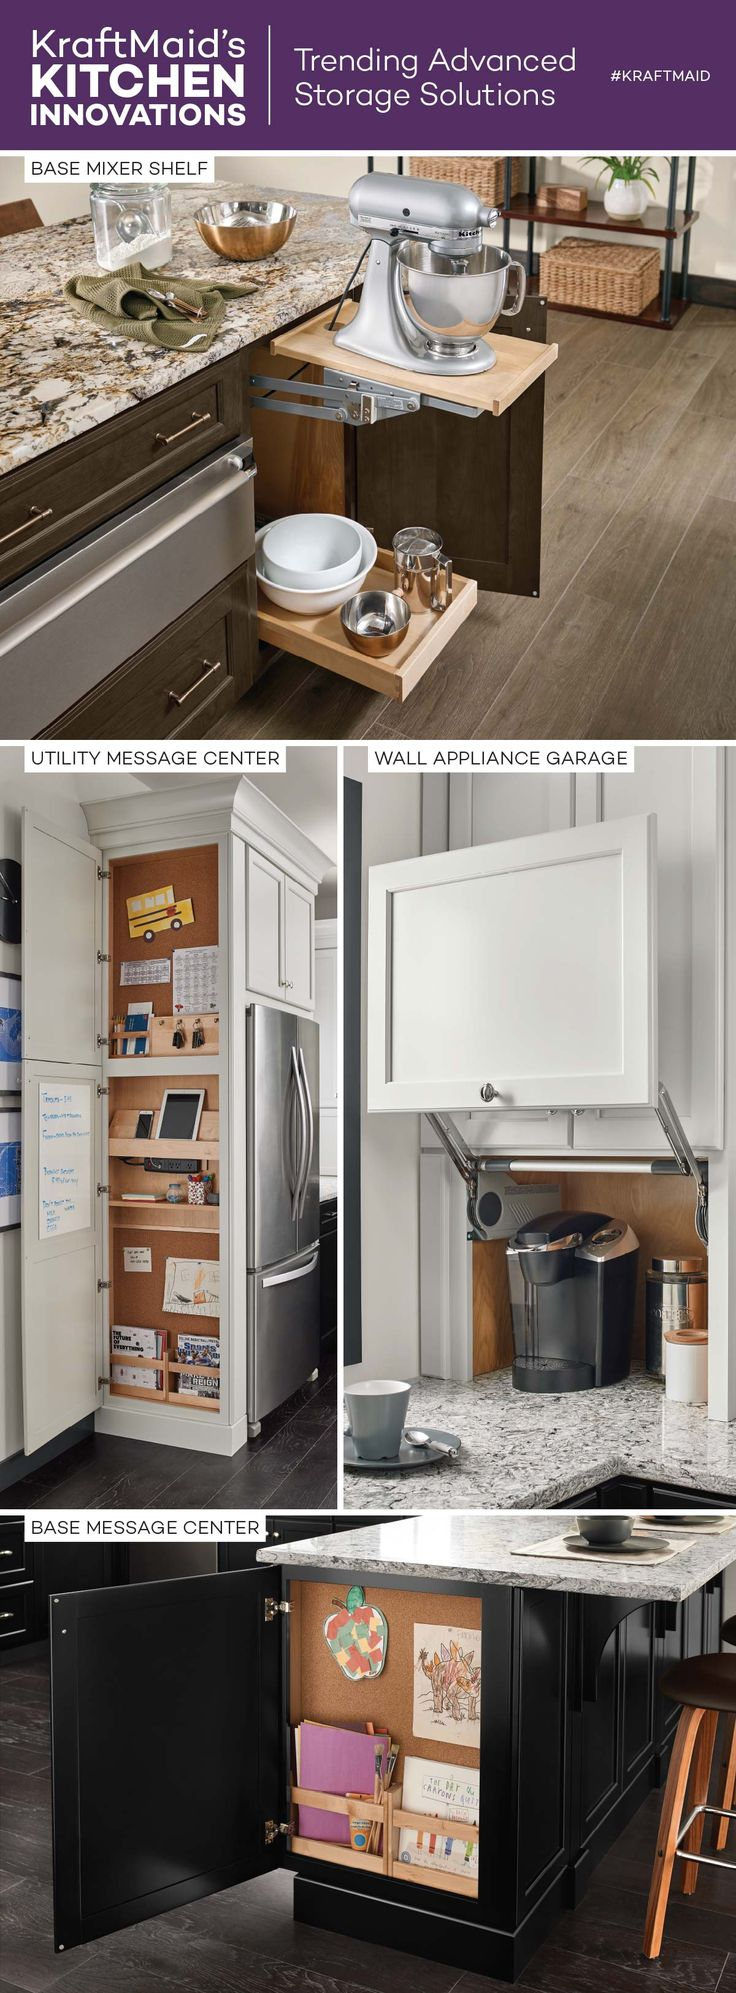 keep appliances and messaging centers hidden yet within reach with these kitchen innovations from